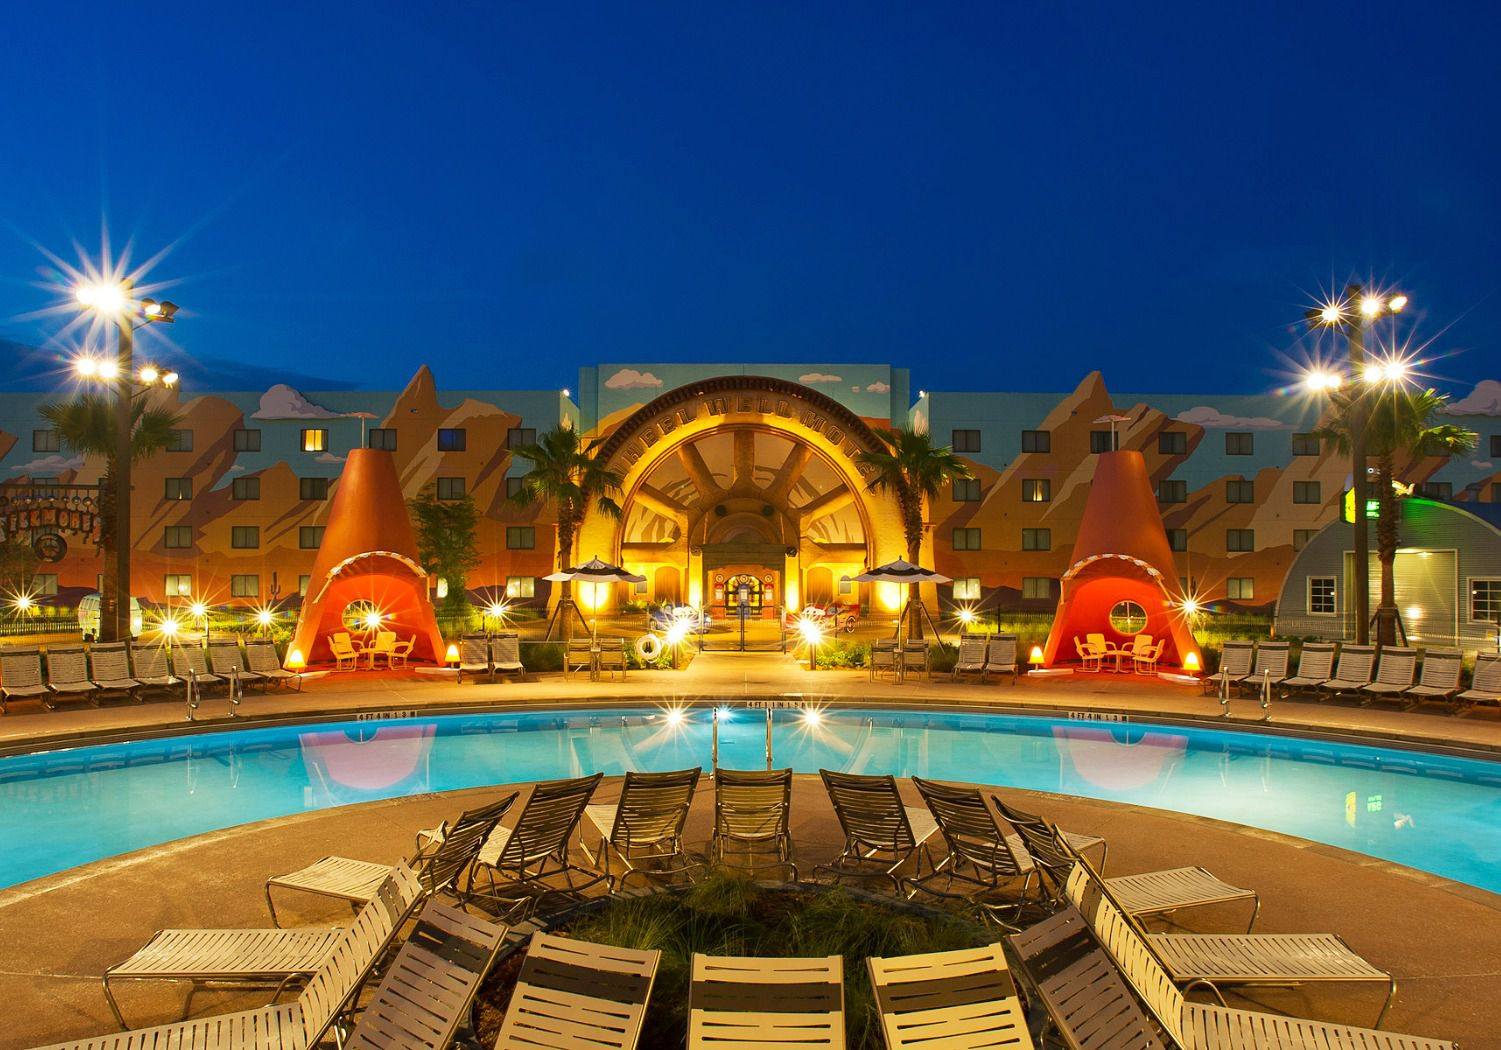 8 Cheapest Disney World Hotels | Budget Disney Resorts